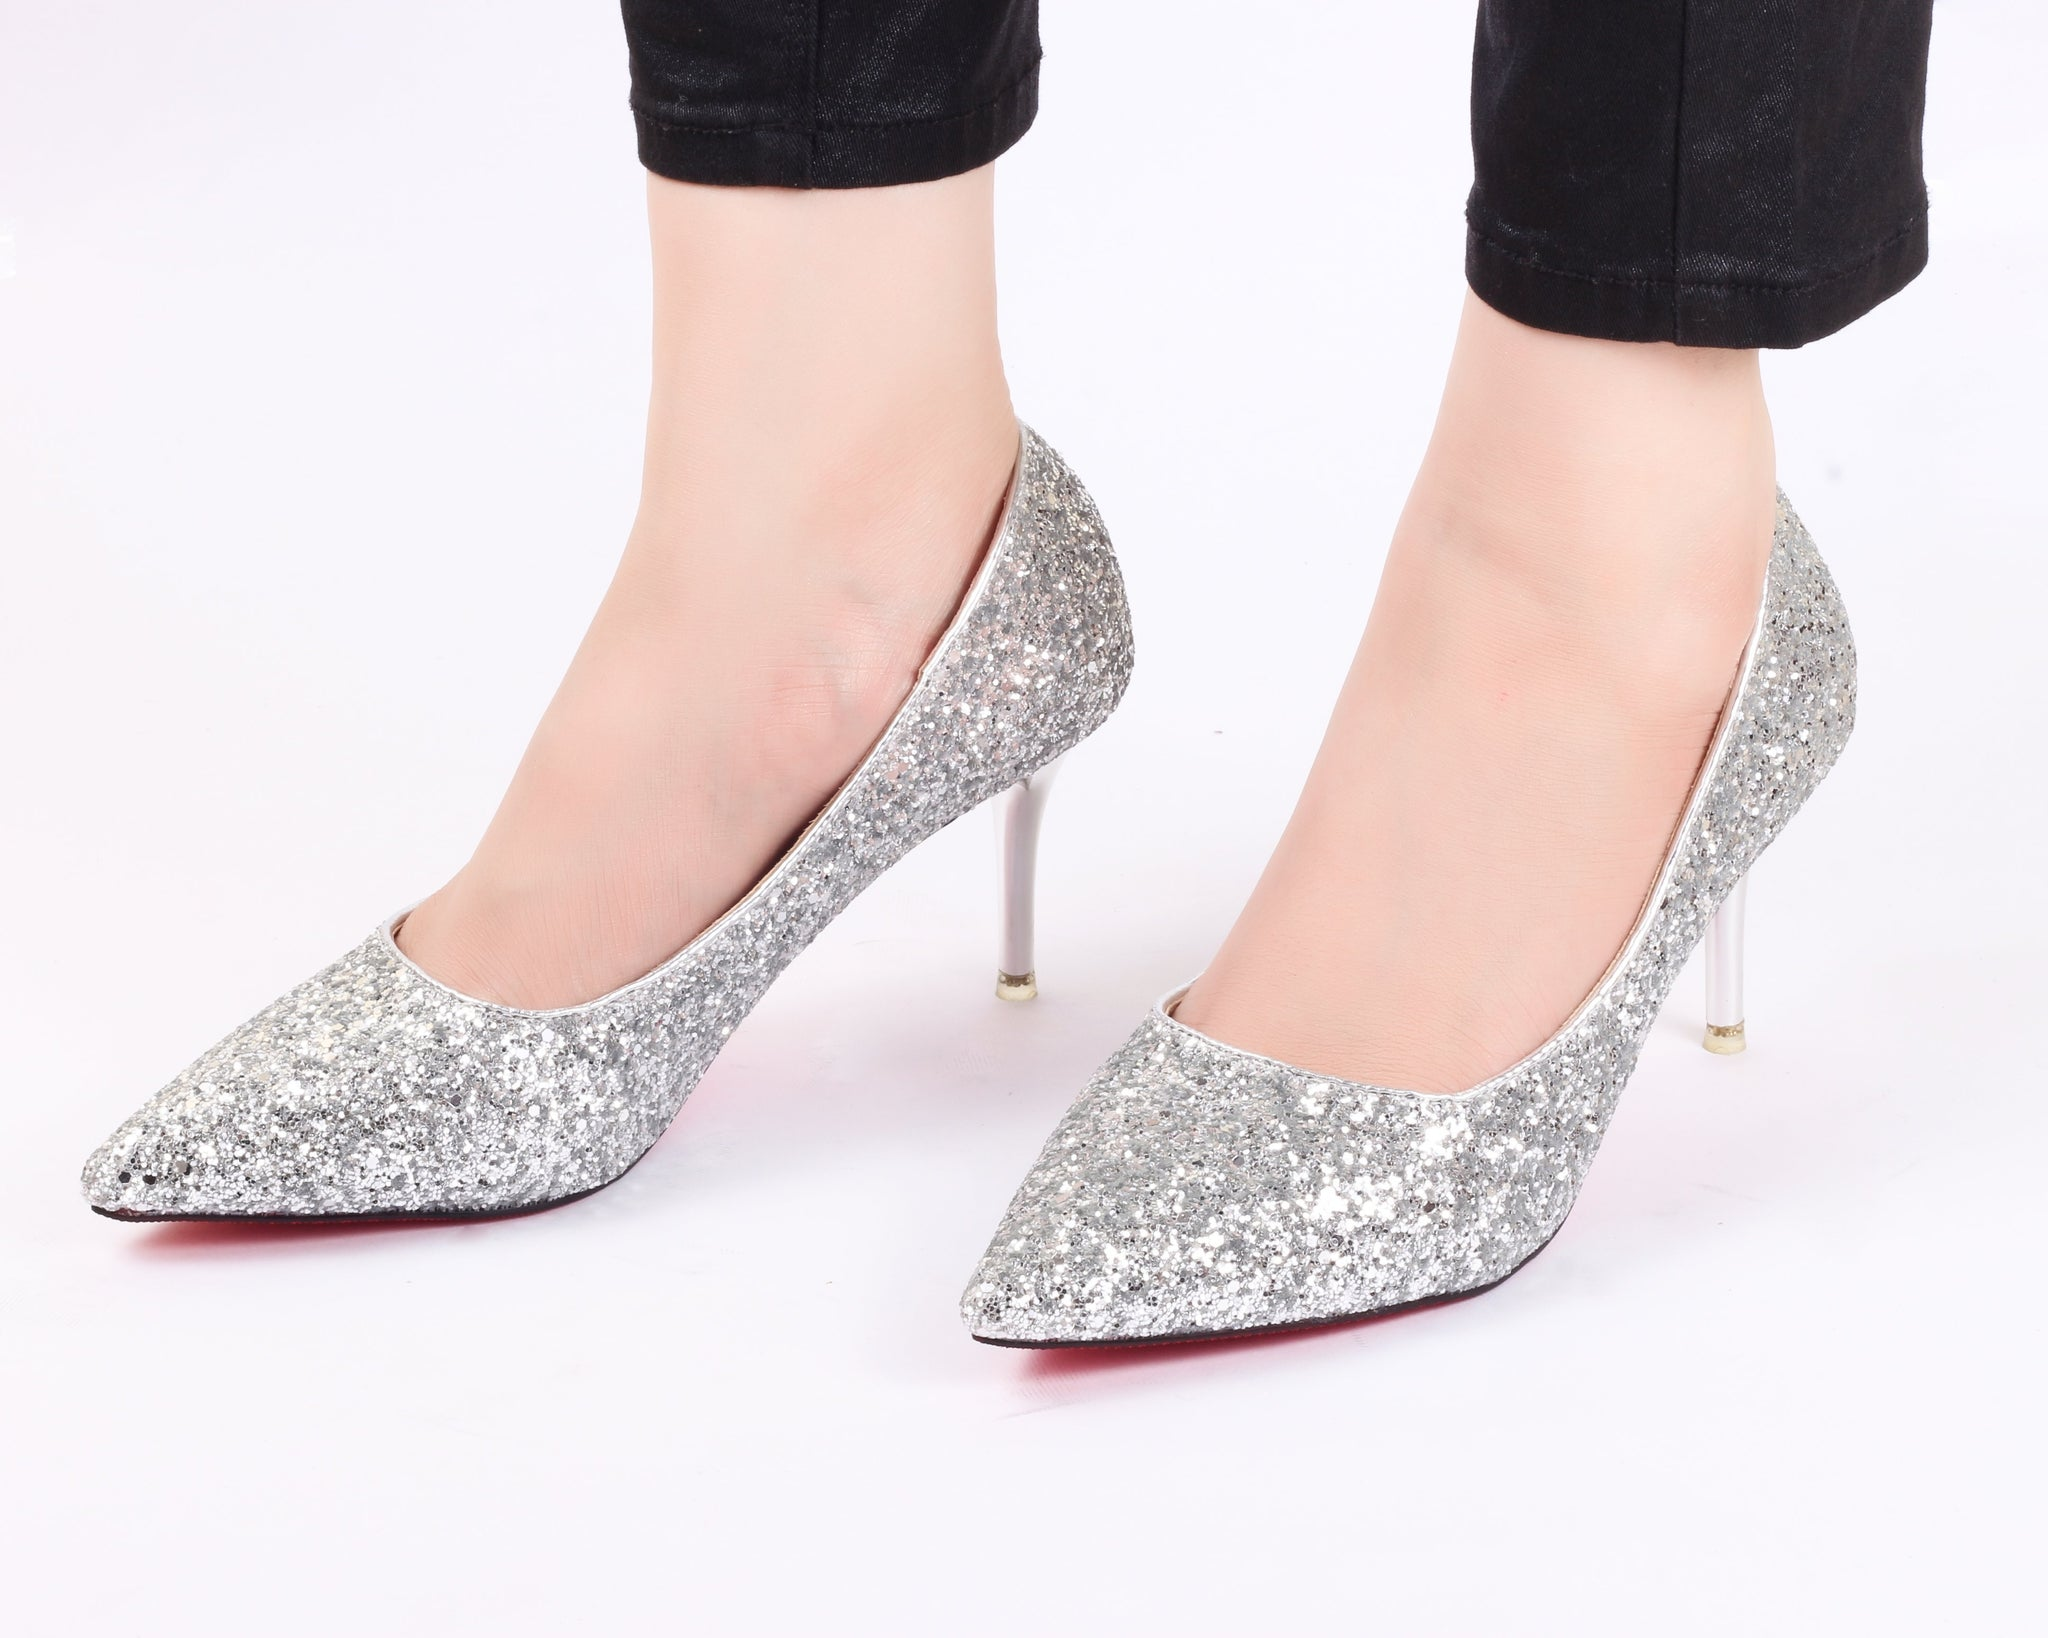 Glamour Silver | Pumps | Bellies | High Heels | Dech Barrouci - DECH BARROUCI